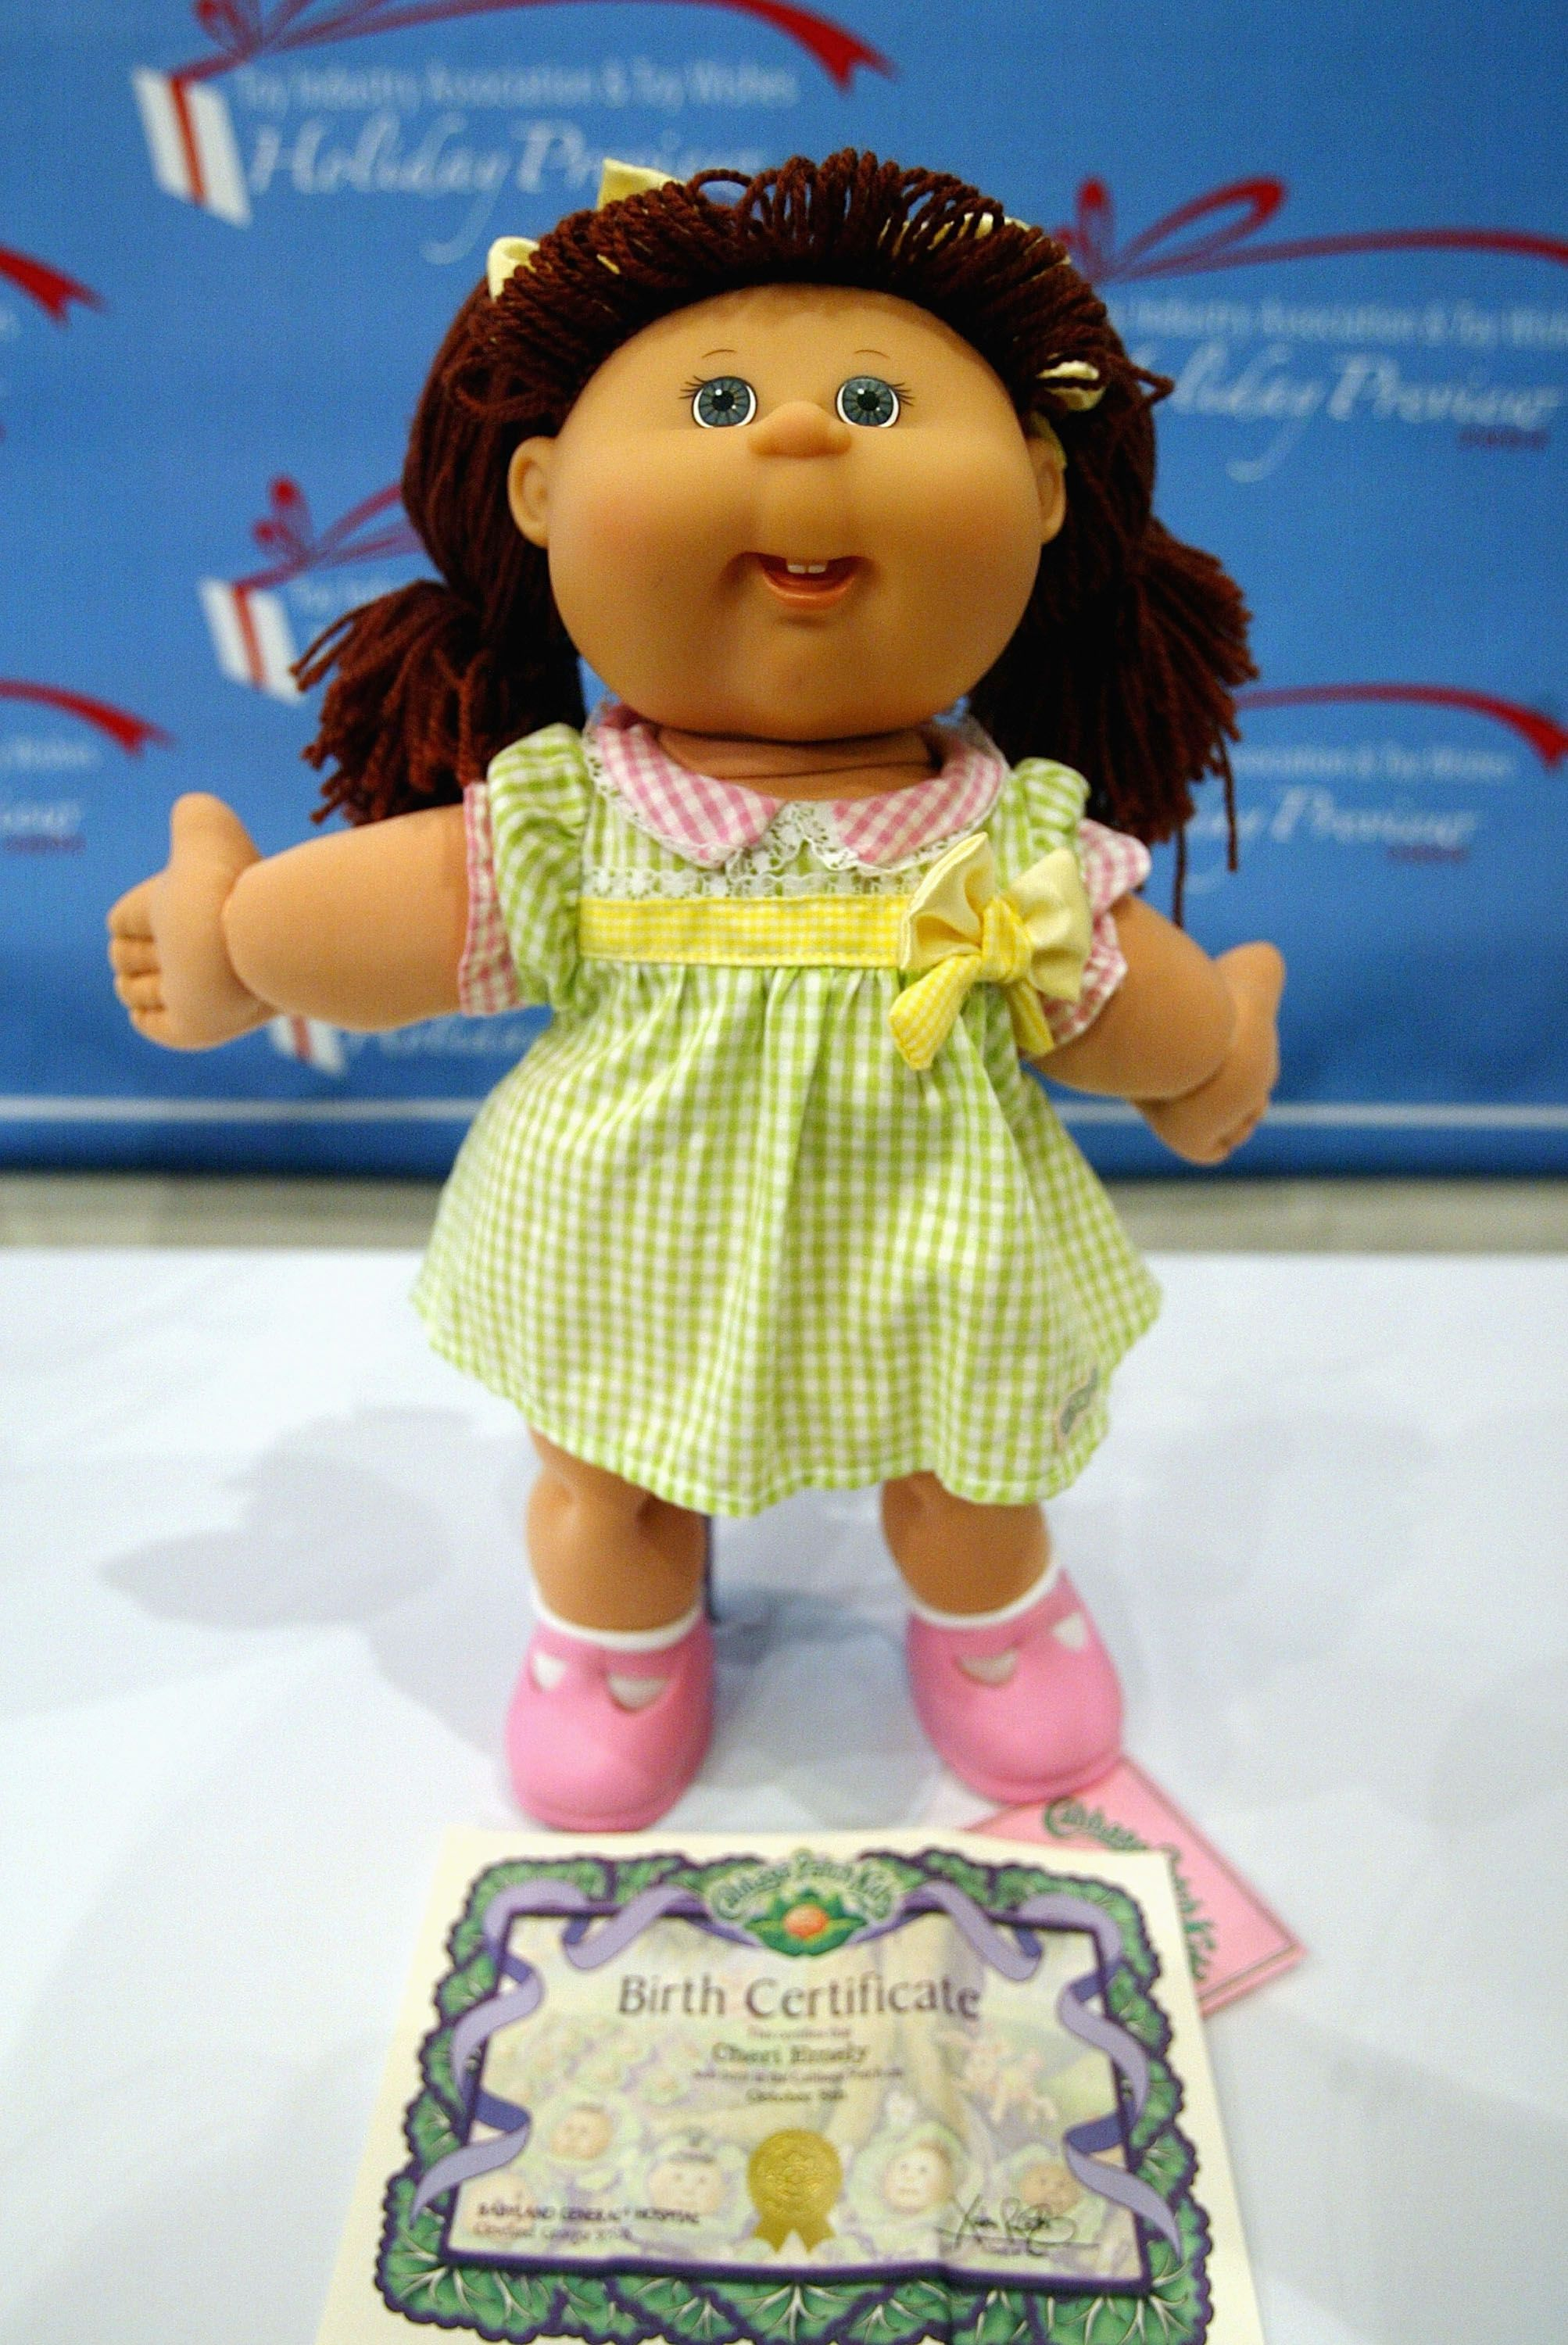 The History Of The Cabbage Patch Kids Dolls